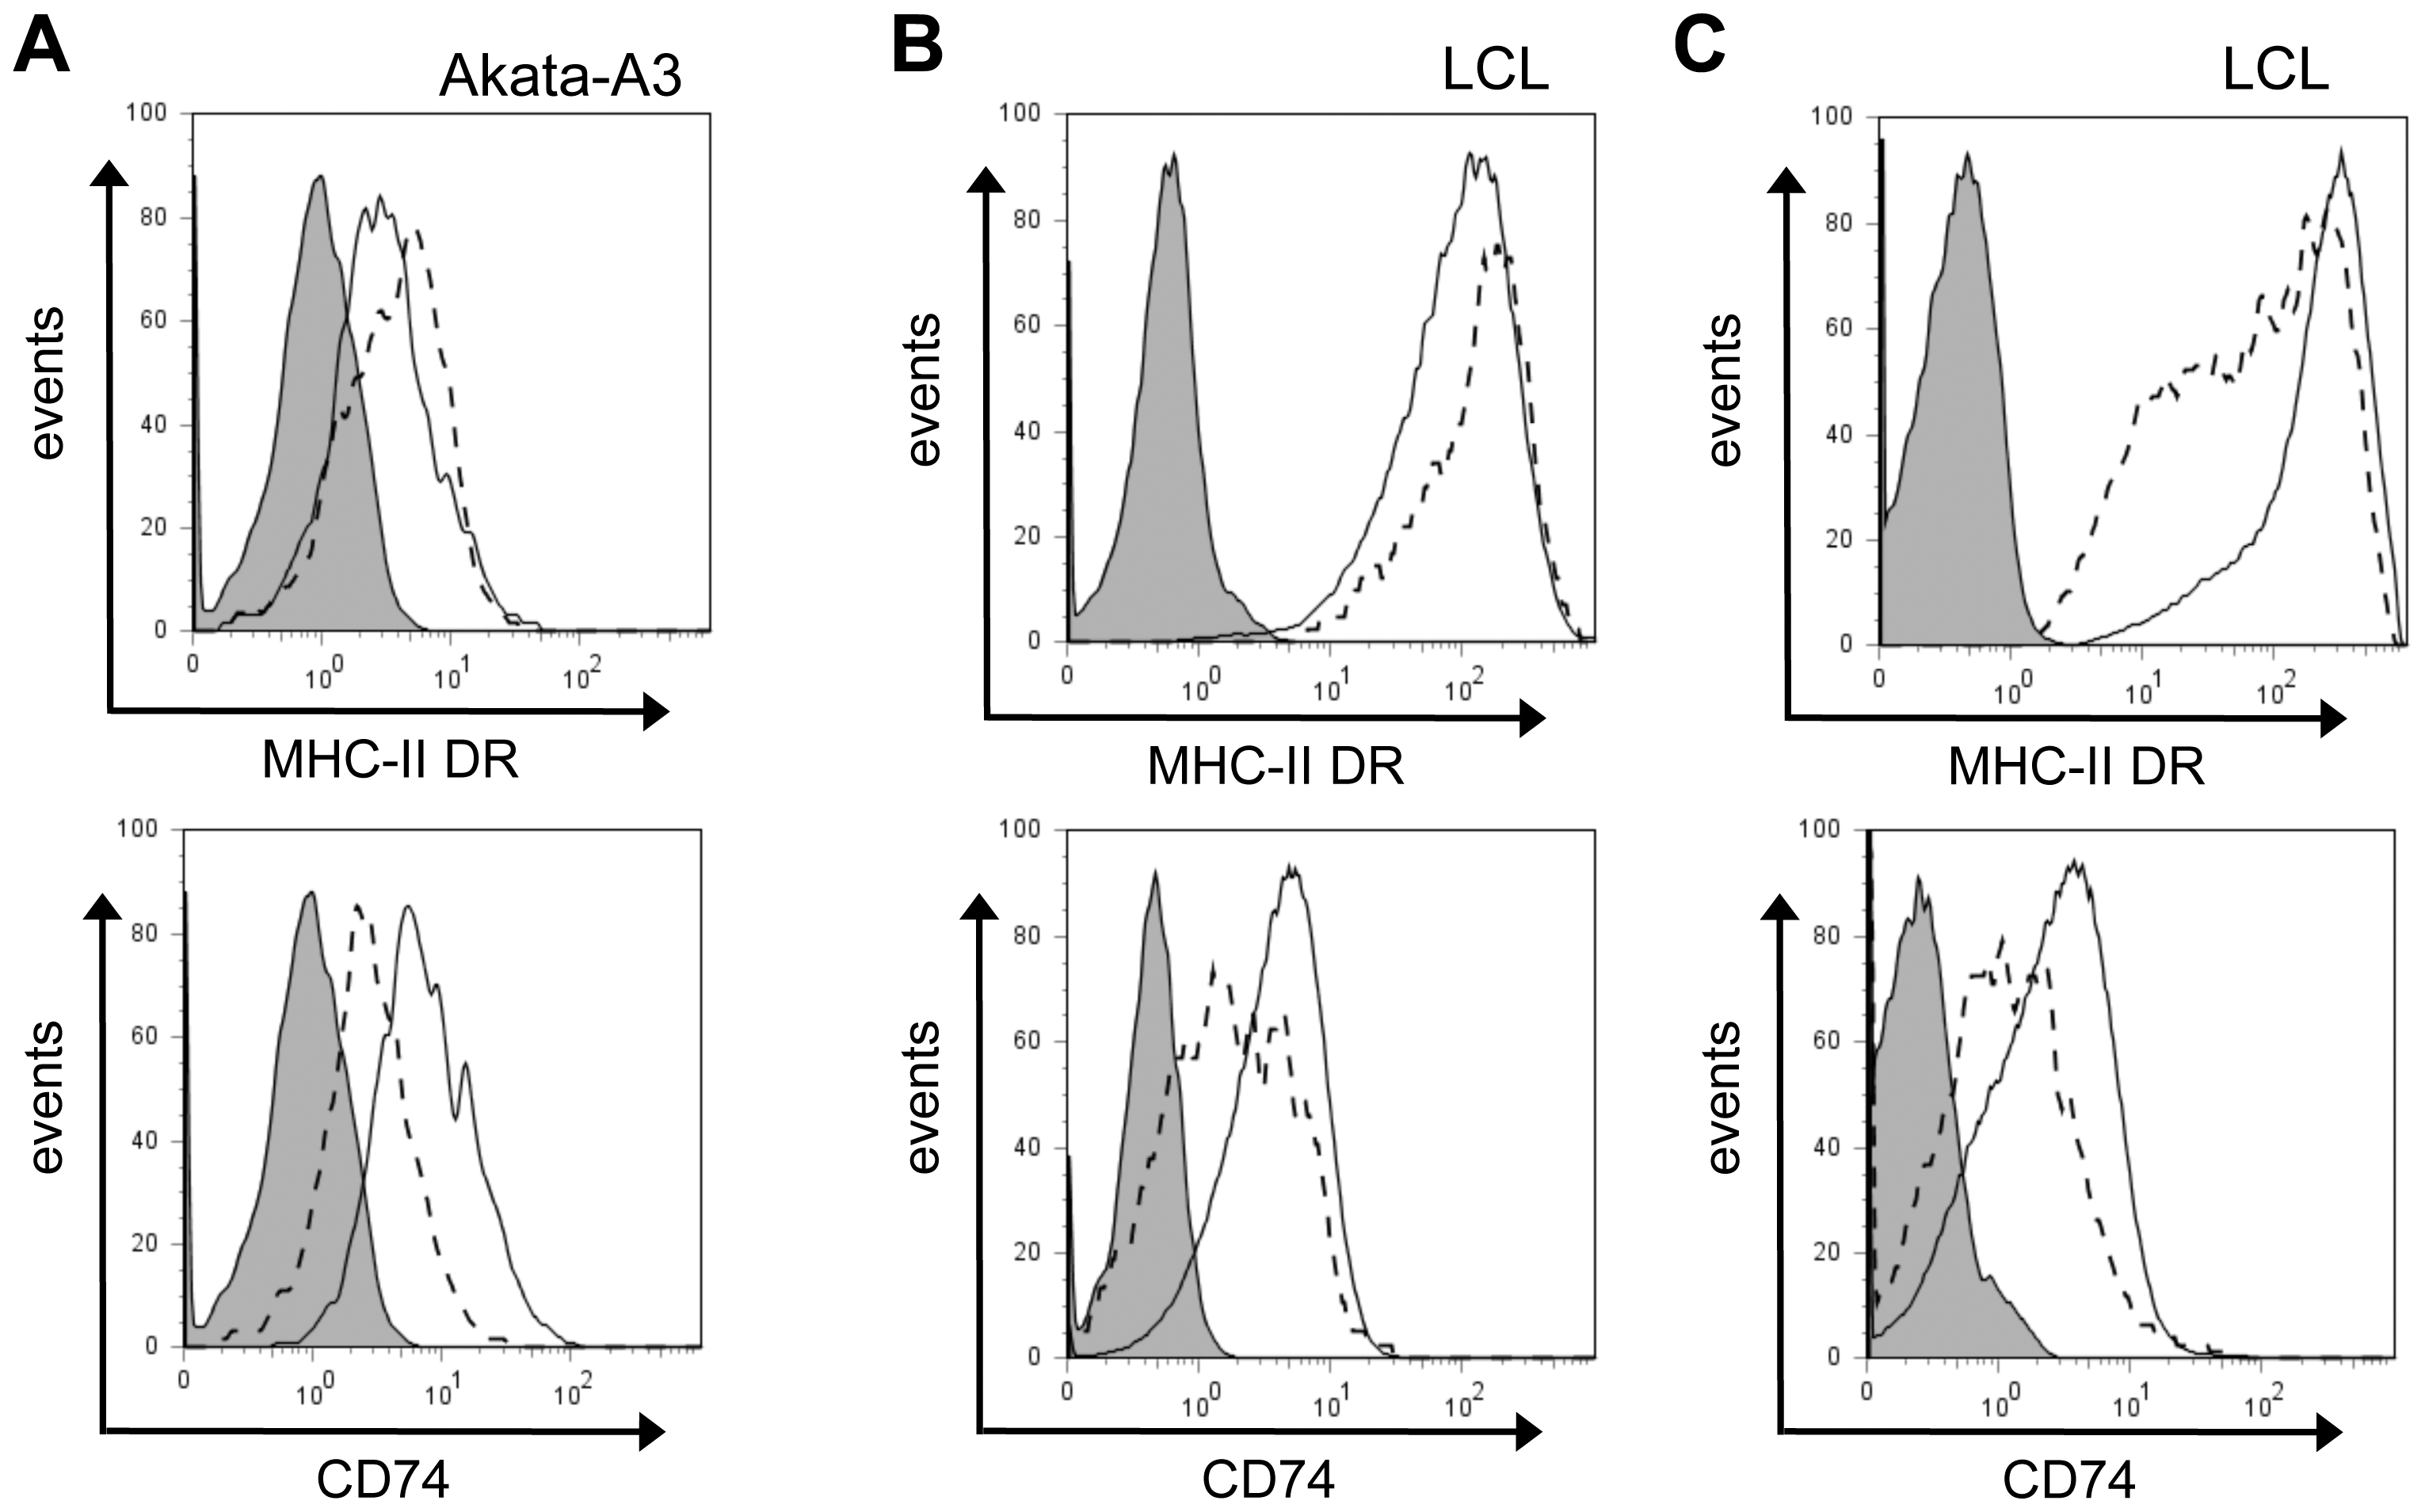 Downregulation of CD74, and not MHC-II DR, is a consistent effect of BZLF1.